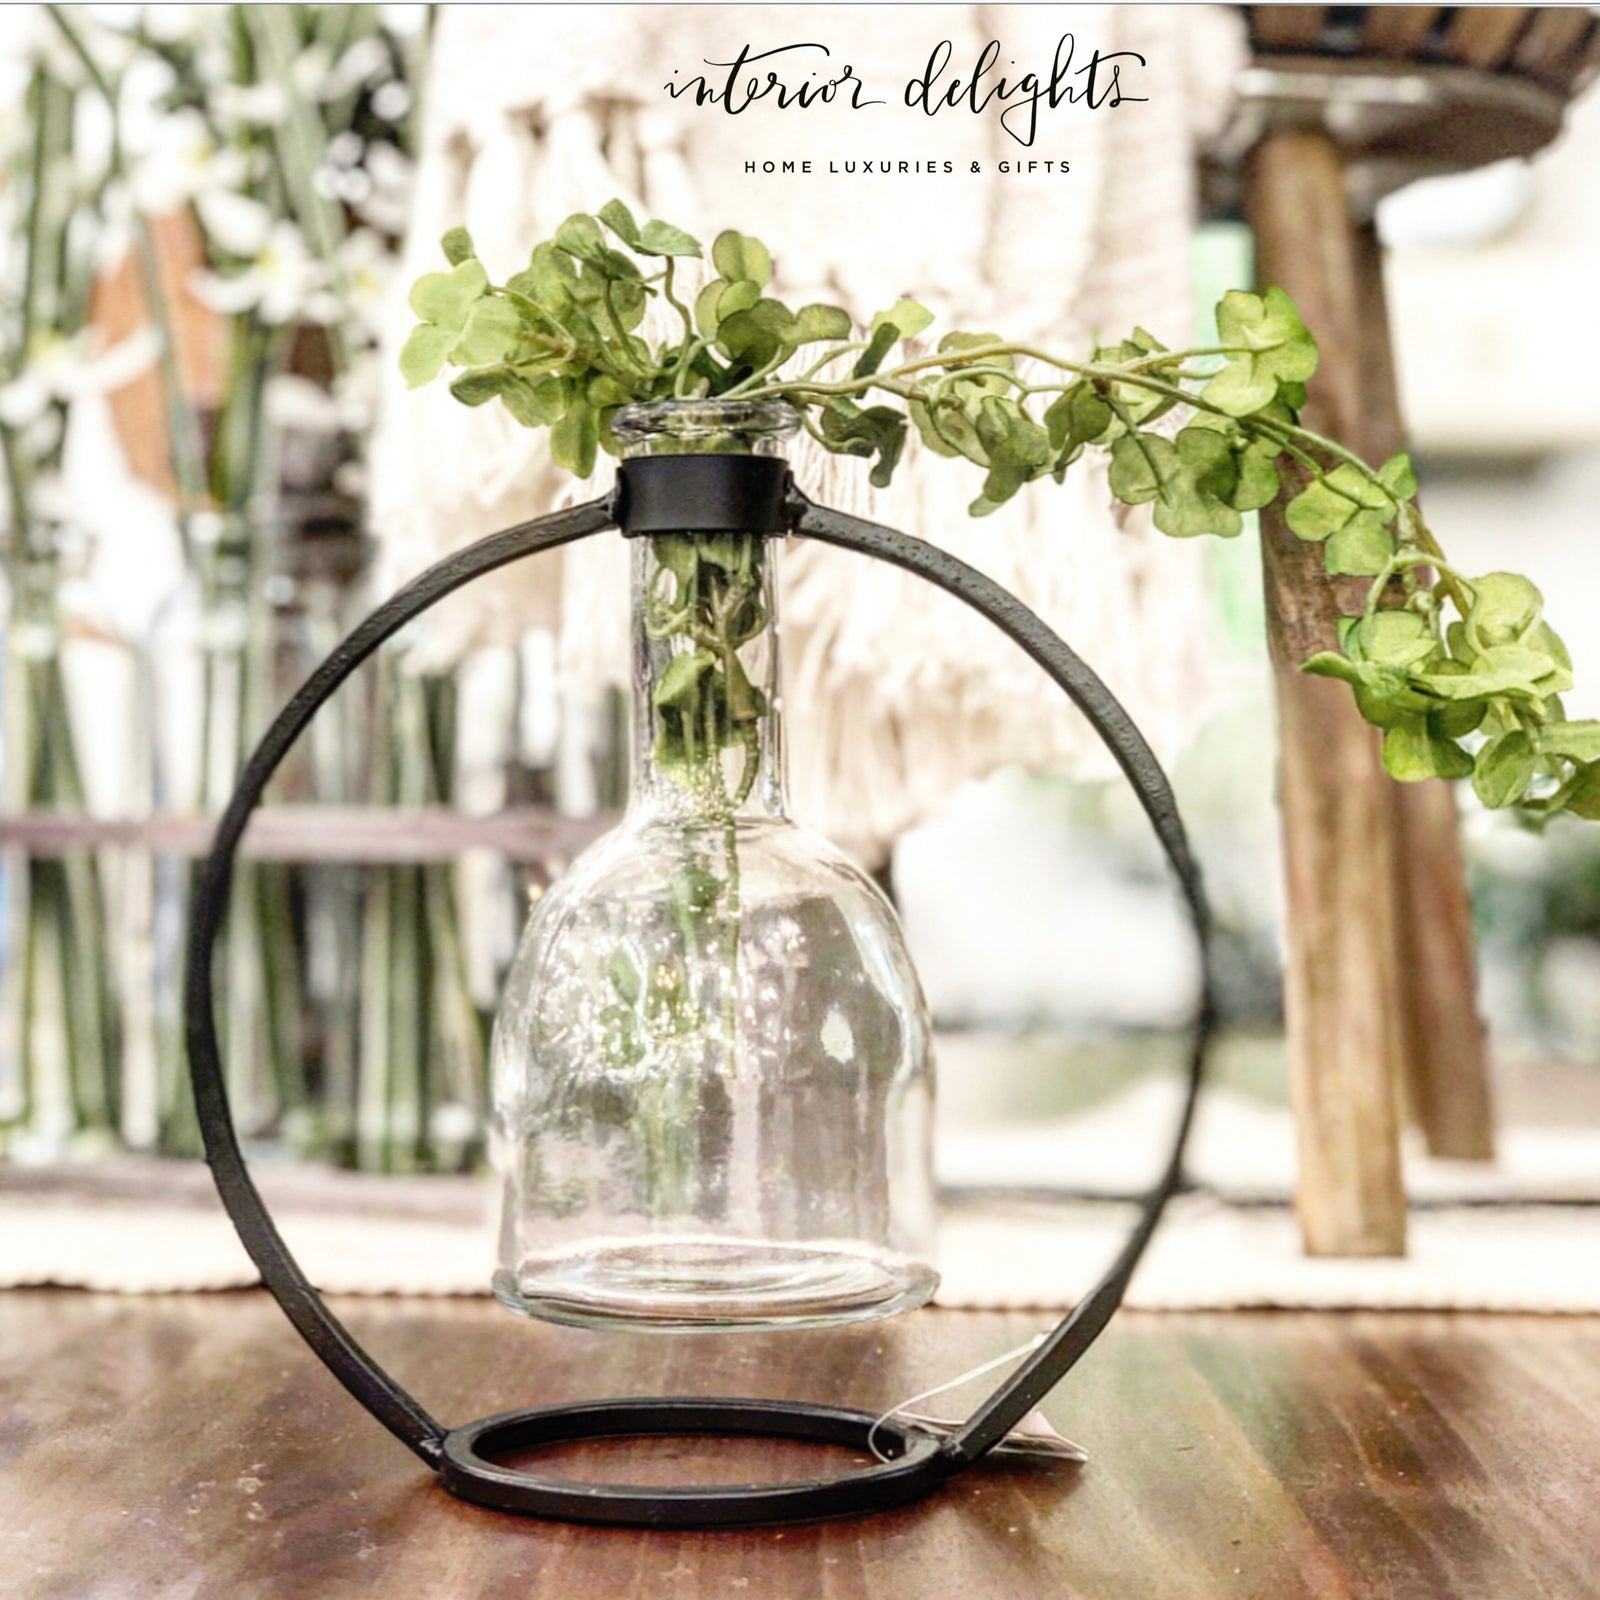 Circular Hanging Bottle Stand